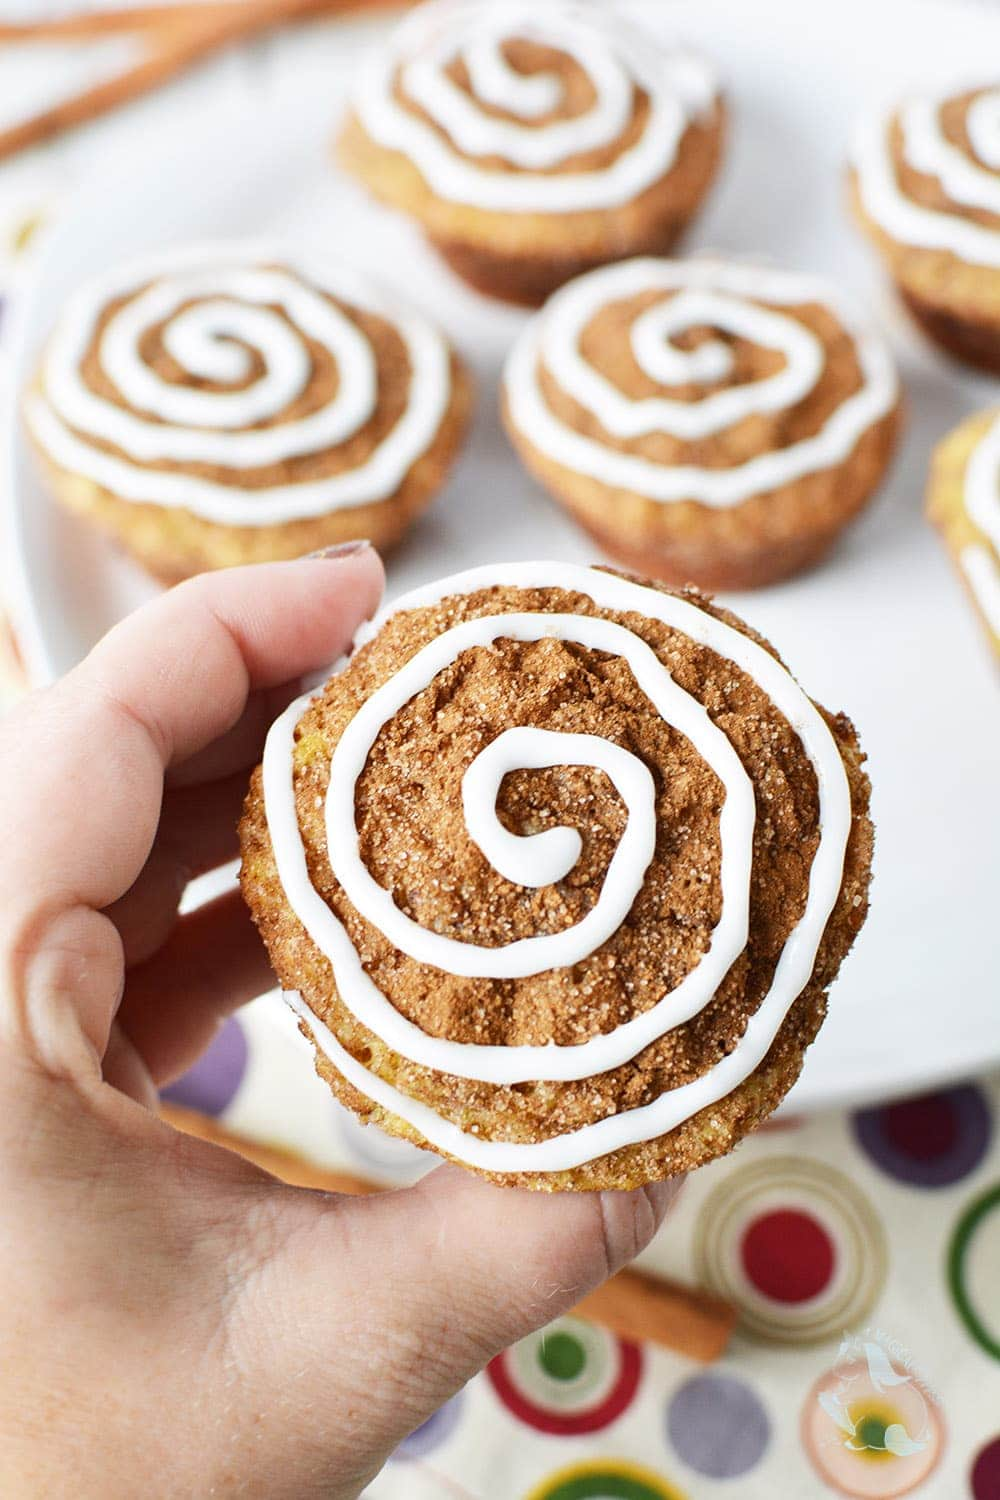 Holding a cinnamon roll muffin up to get a closer look of the glaze topping.